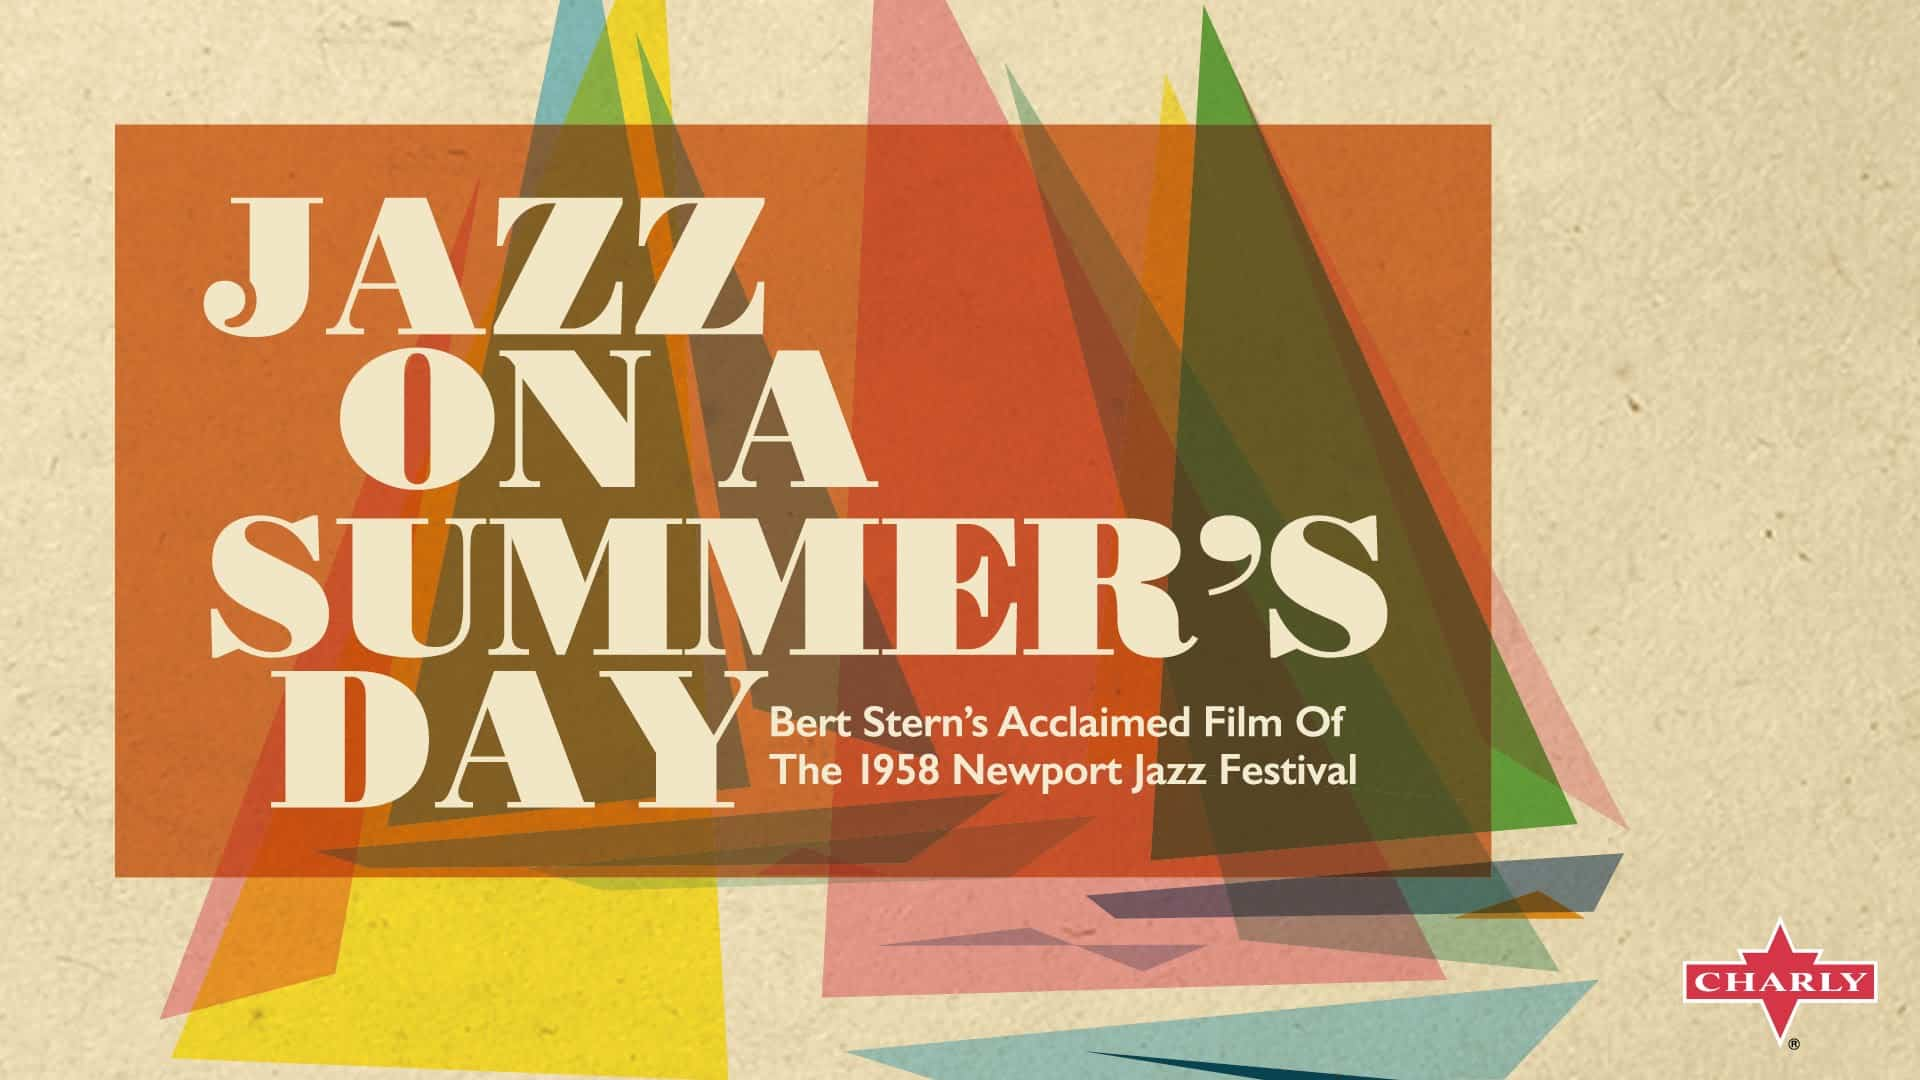 Galway Jazz Festival Hosting a Screening of 'Jazz On A Summer's Day'